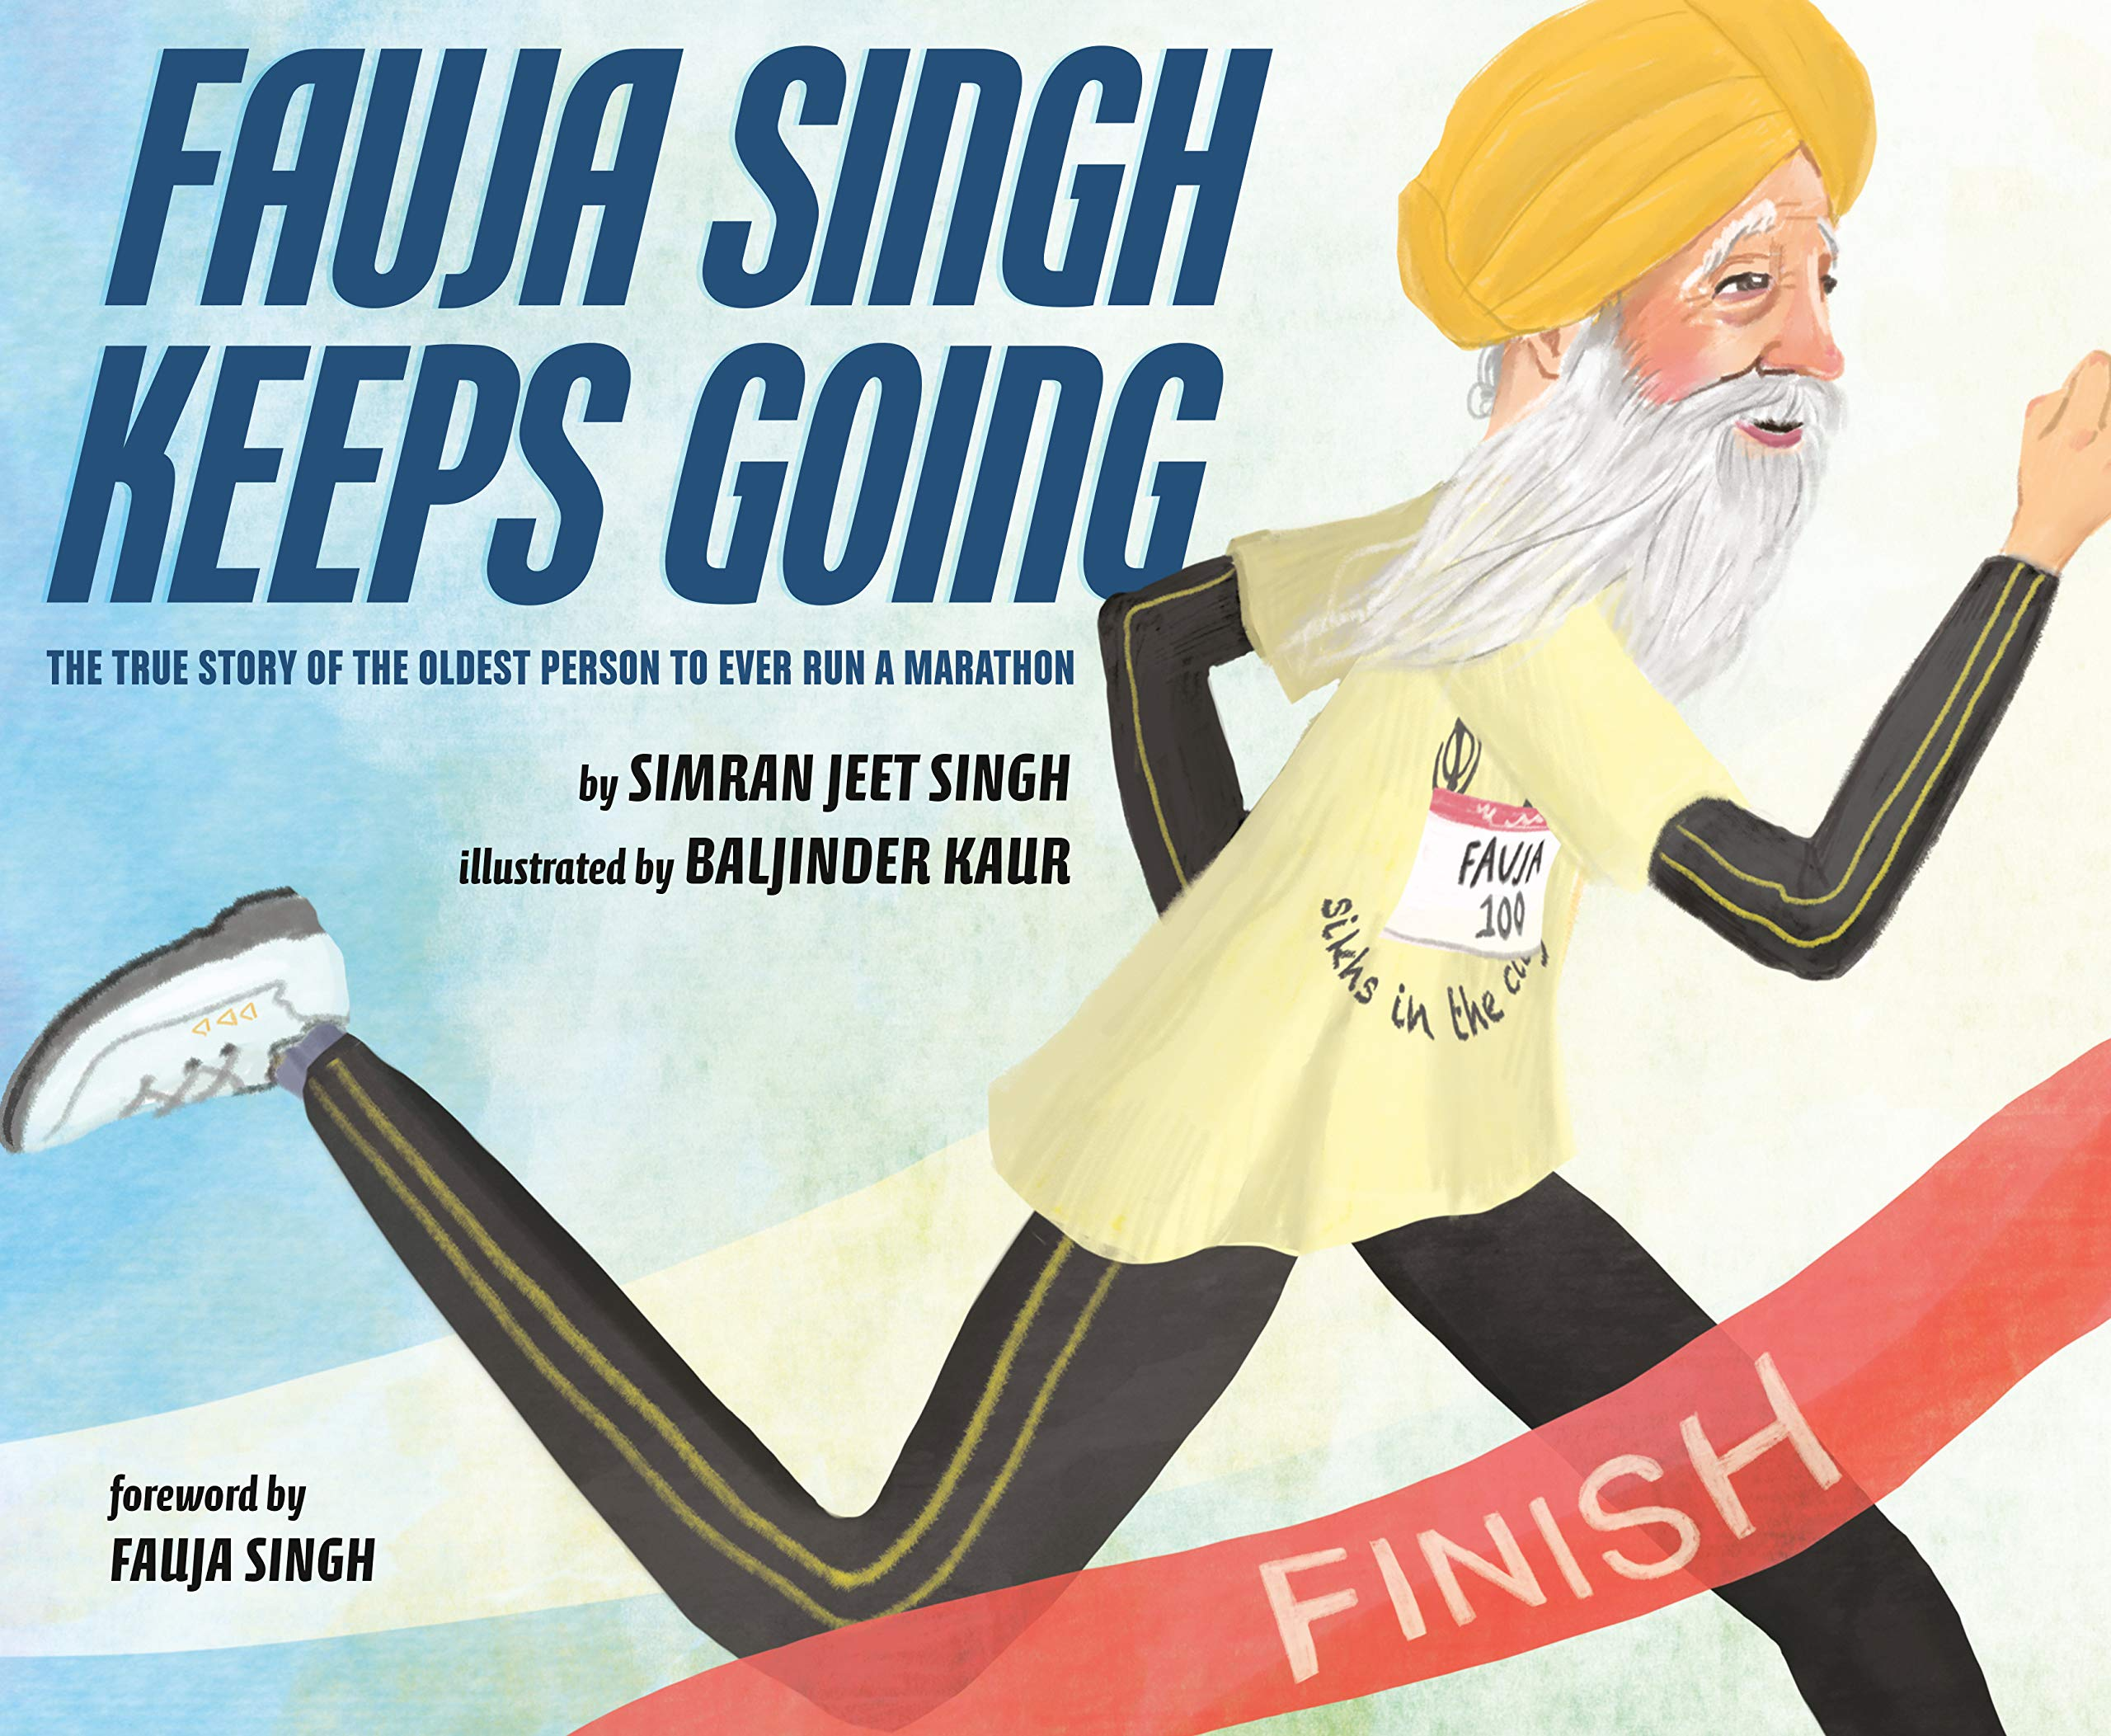 Fauja Singh Keeps Going: The True Story of the Oldest Person to Ever Run a Marathon by Simran Singh Jeet